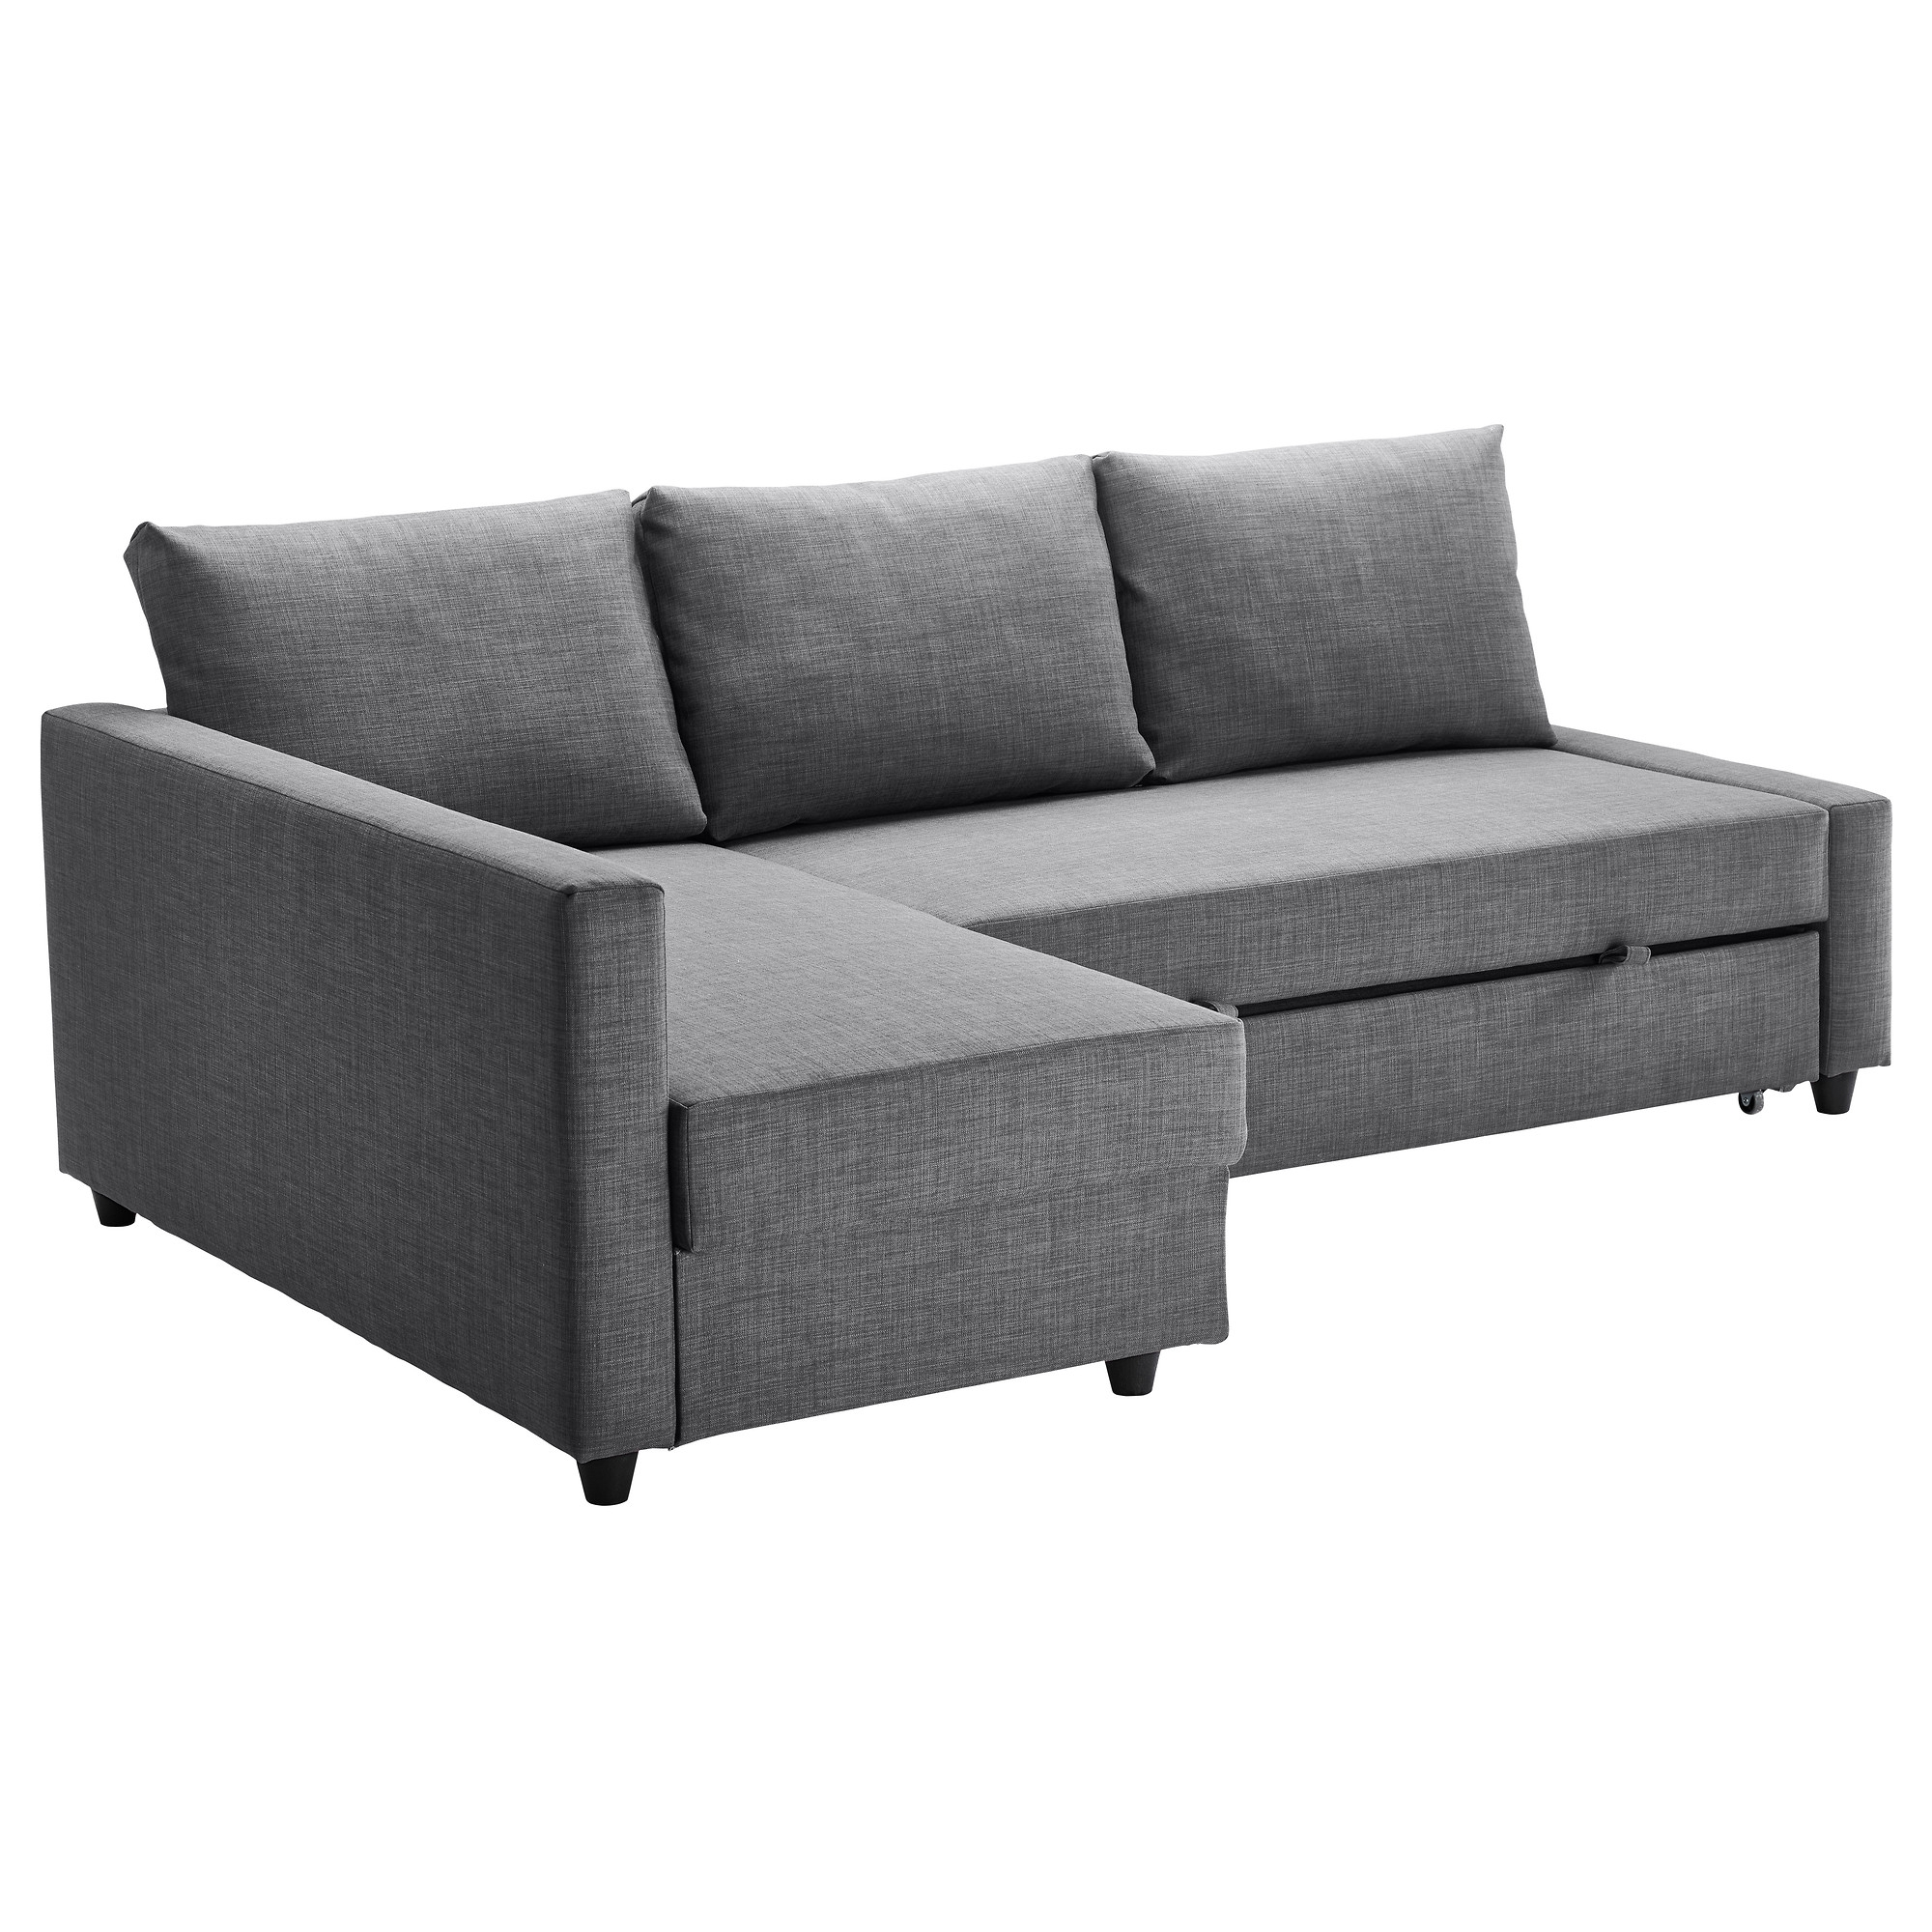 Ikea Chaise Couches With Best And Newest Friheten Corner Sofa Bed With Storage Skiftebo Dark Grey – Ikea (Gallery 14 of 15)